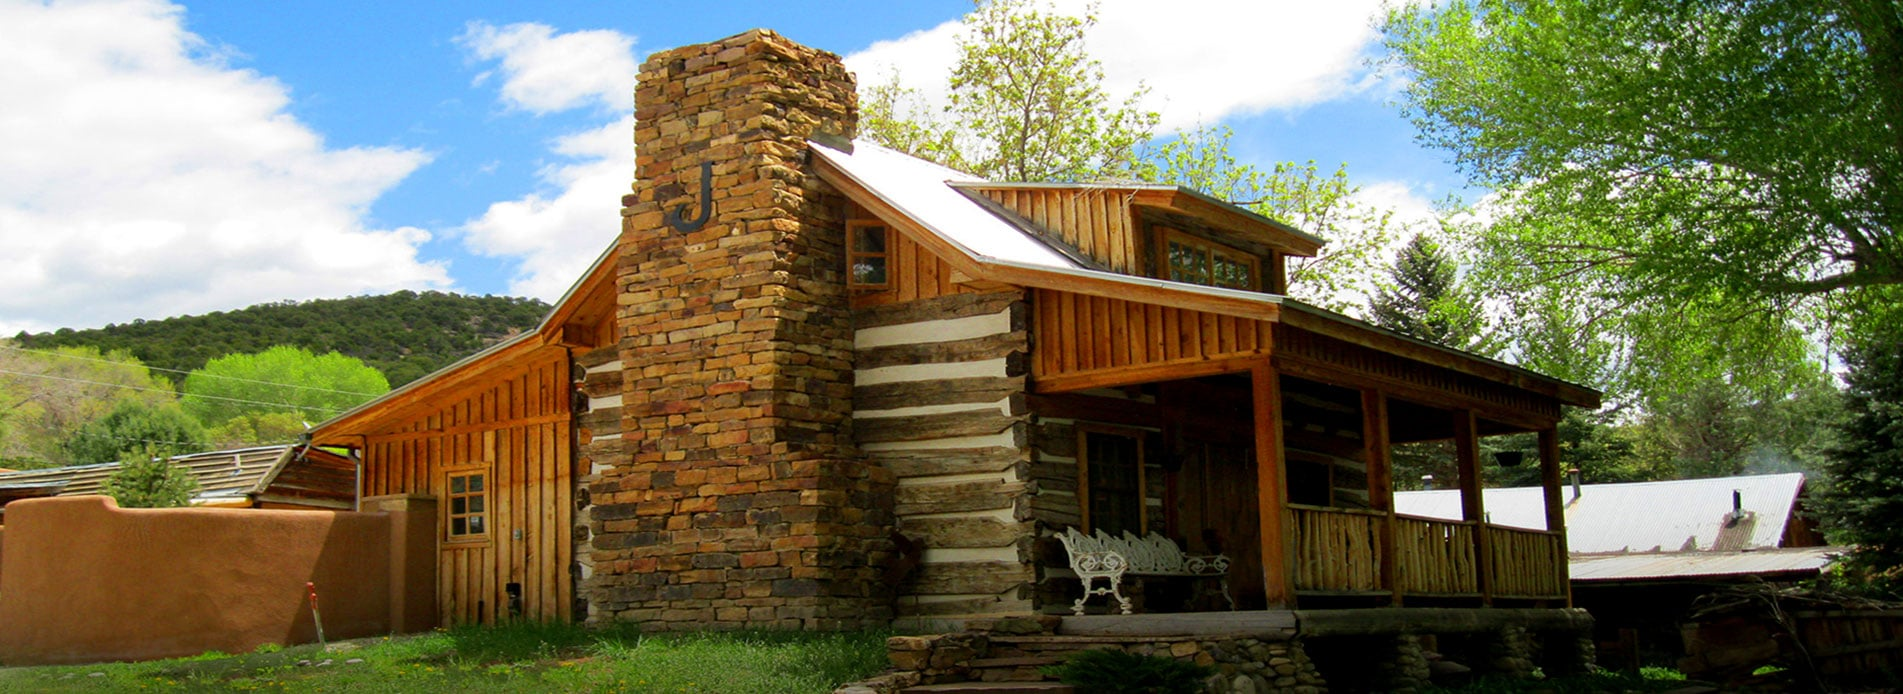 Lodging in taos nm rentals hotels in taos new mexico for Cabins in taos nm